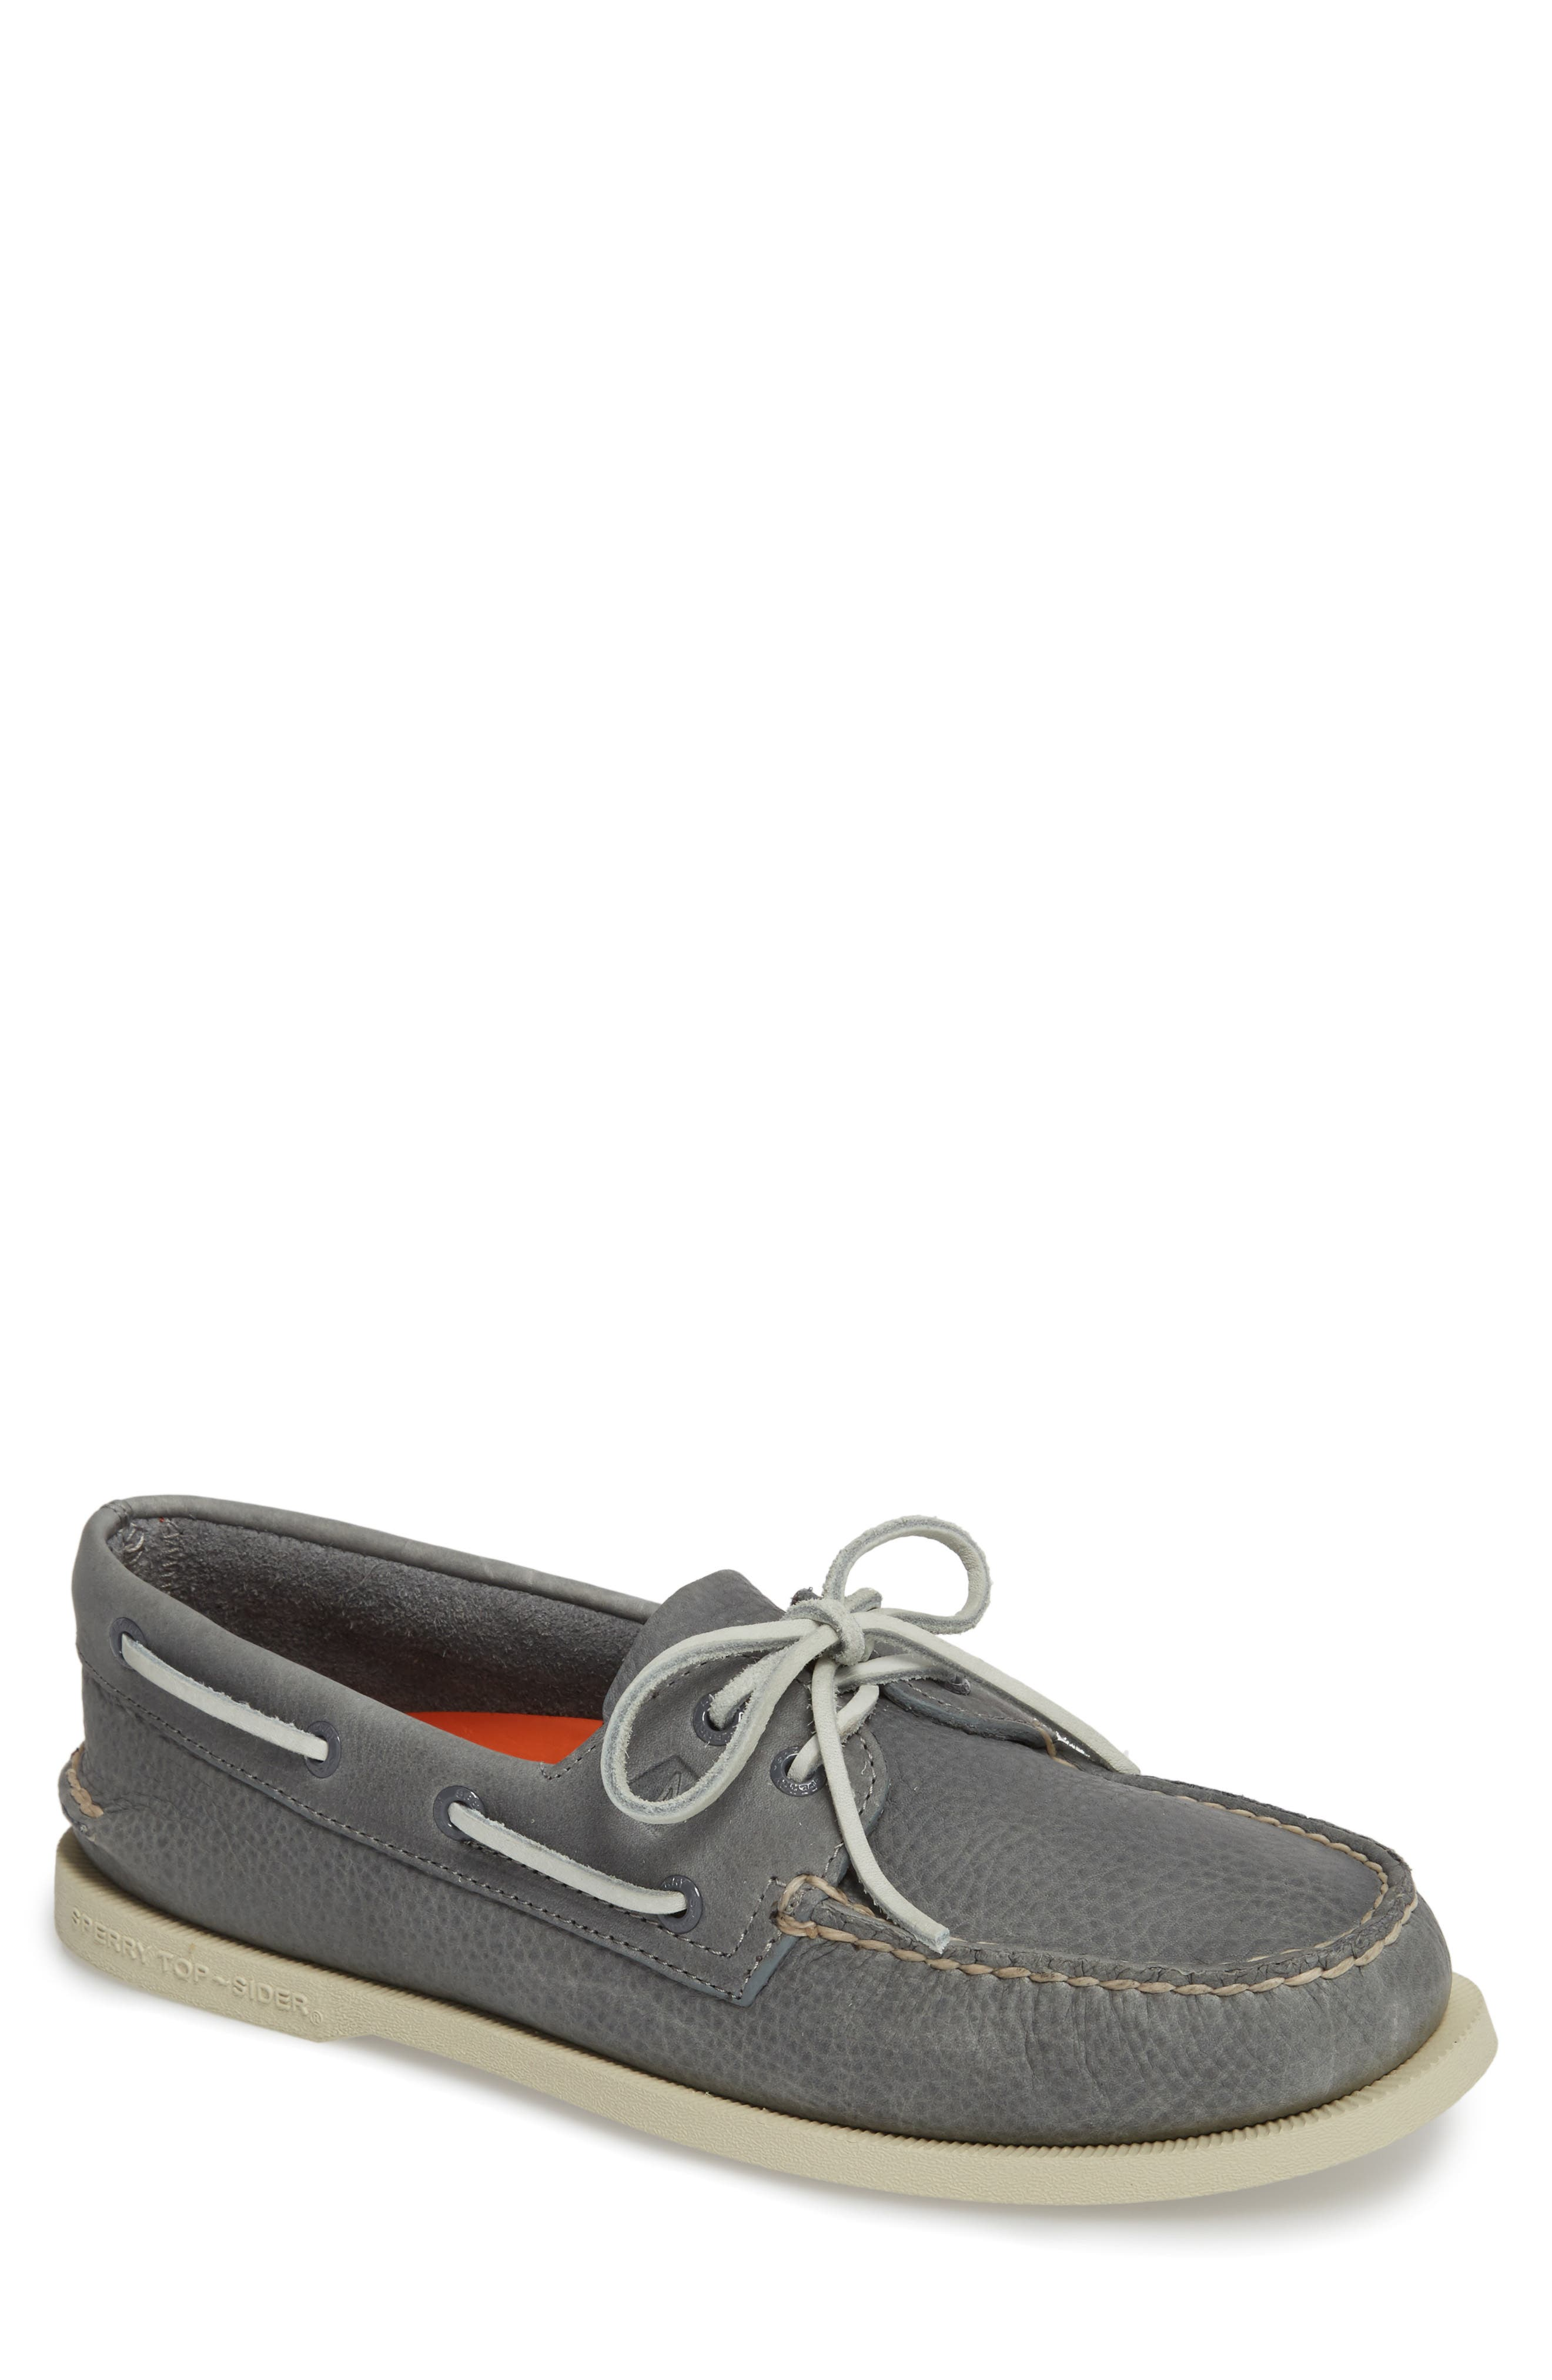 Sperry AO 2 Eye Daytona Boat Shoe (Men)